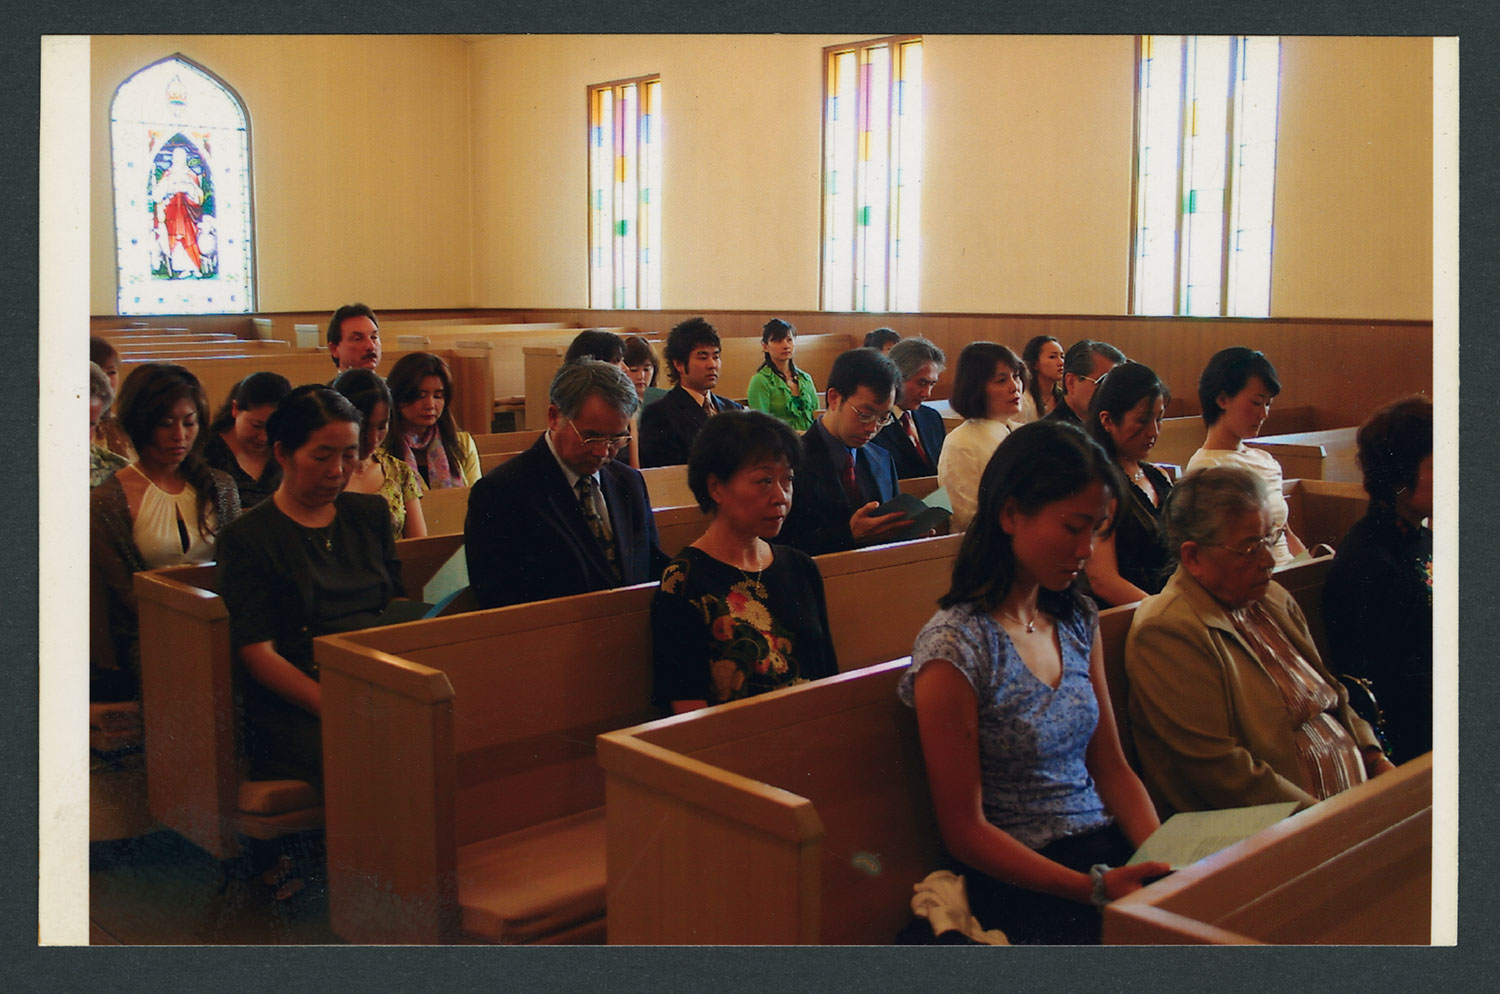 The congregation at worship